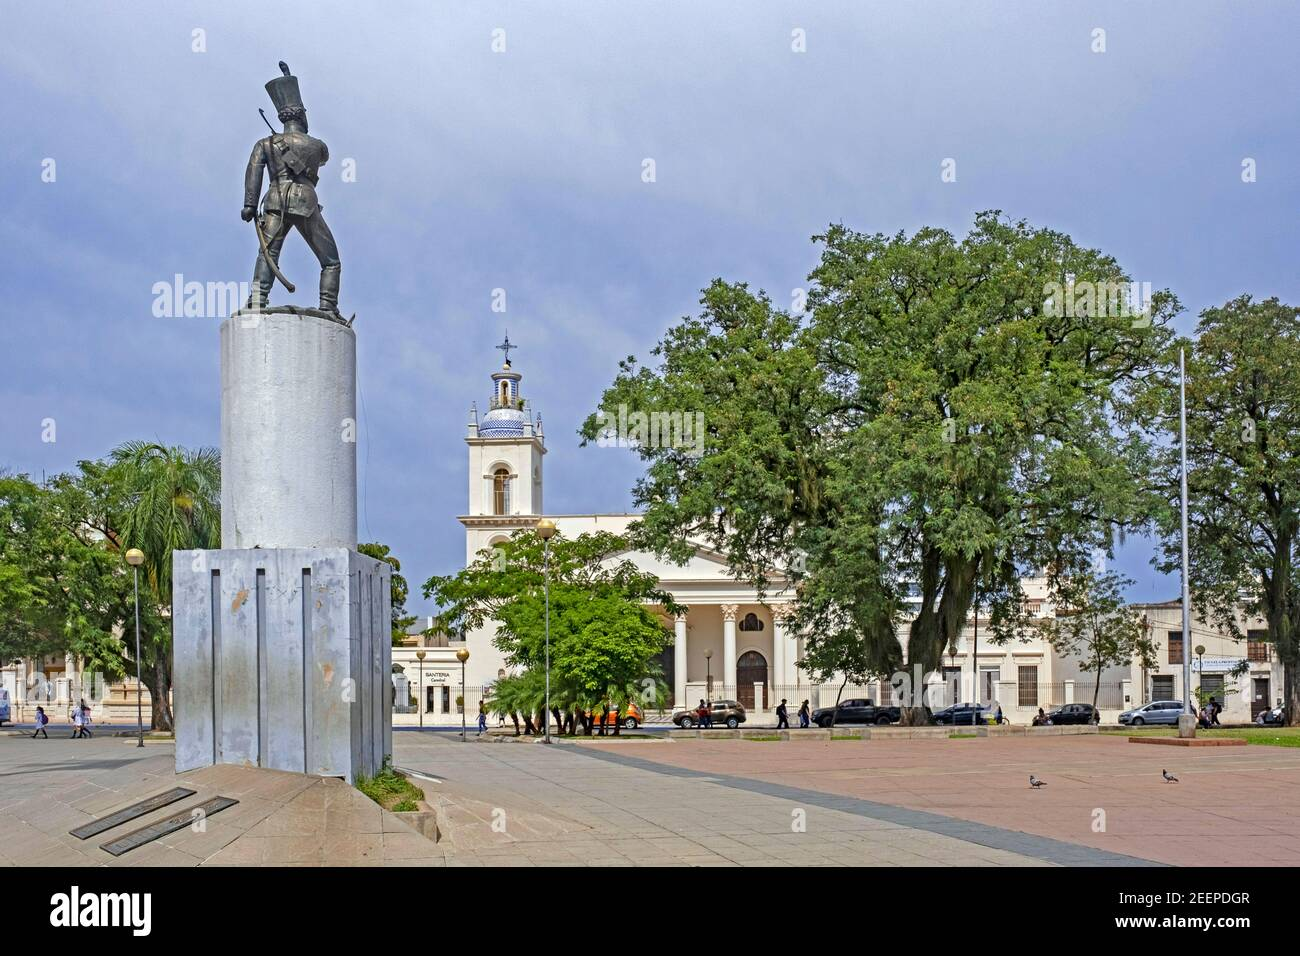 Statue of sergeant Juan Cabral and colonial cathedral at the Plaza Sargento Cabral, main square in the city Corrientes, Corrientes Province, Argentina Stock Photo